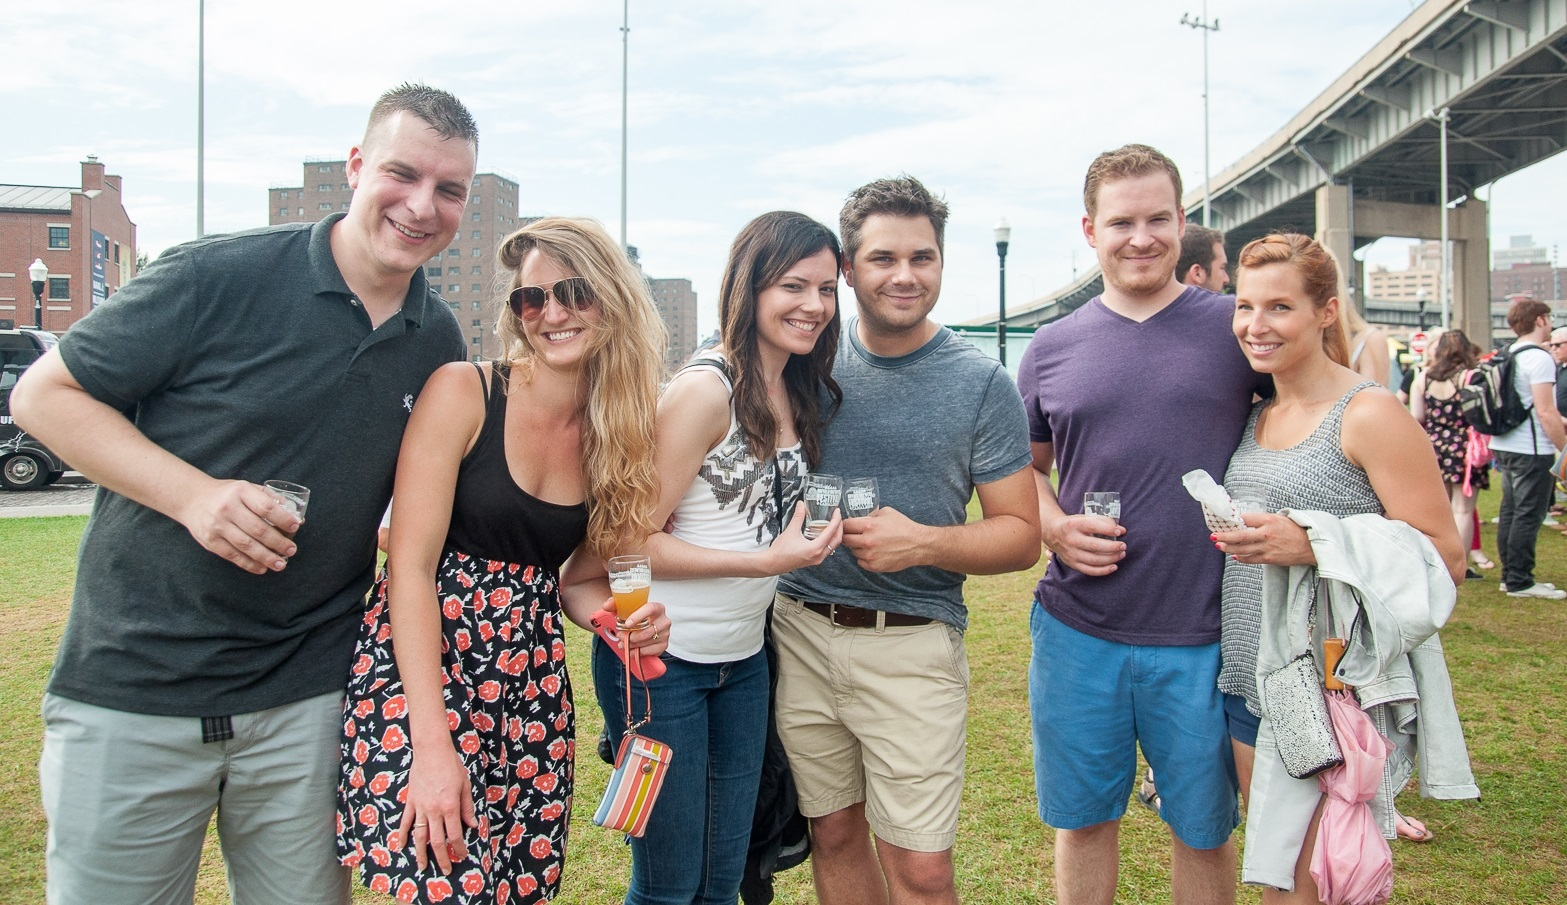 Smiling faces at the 2015 Buffalo Brewers Festival. (Matt Weinberg/Special to The News)